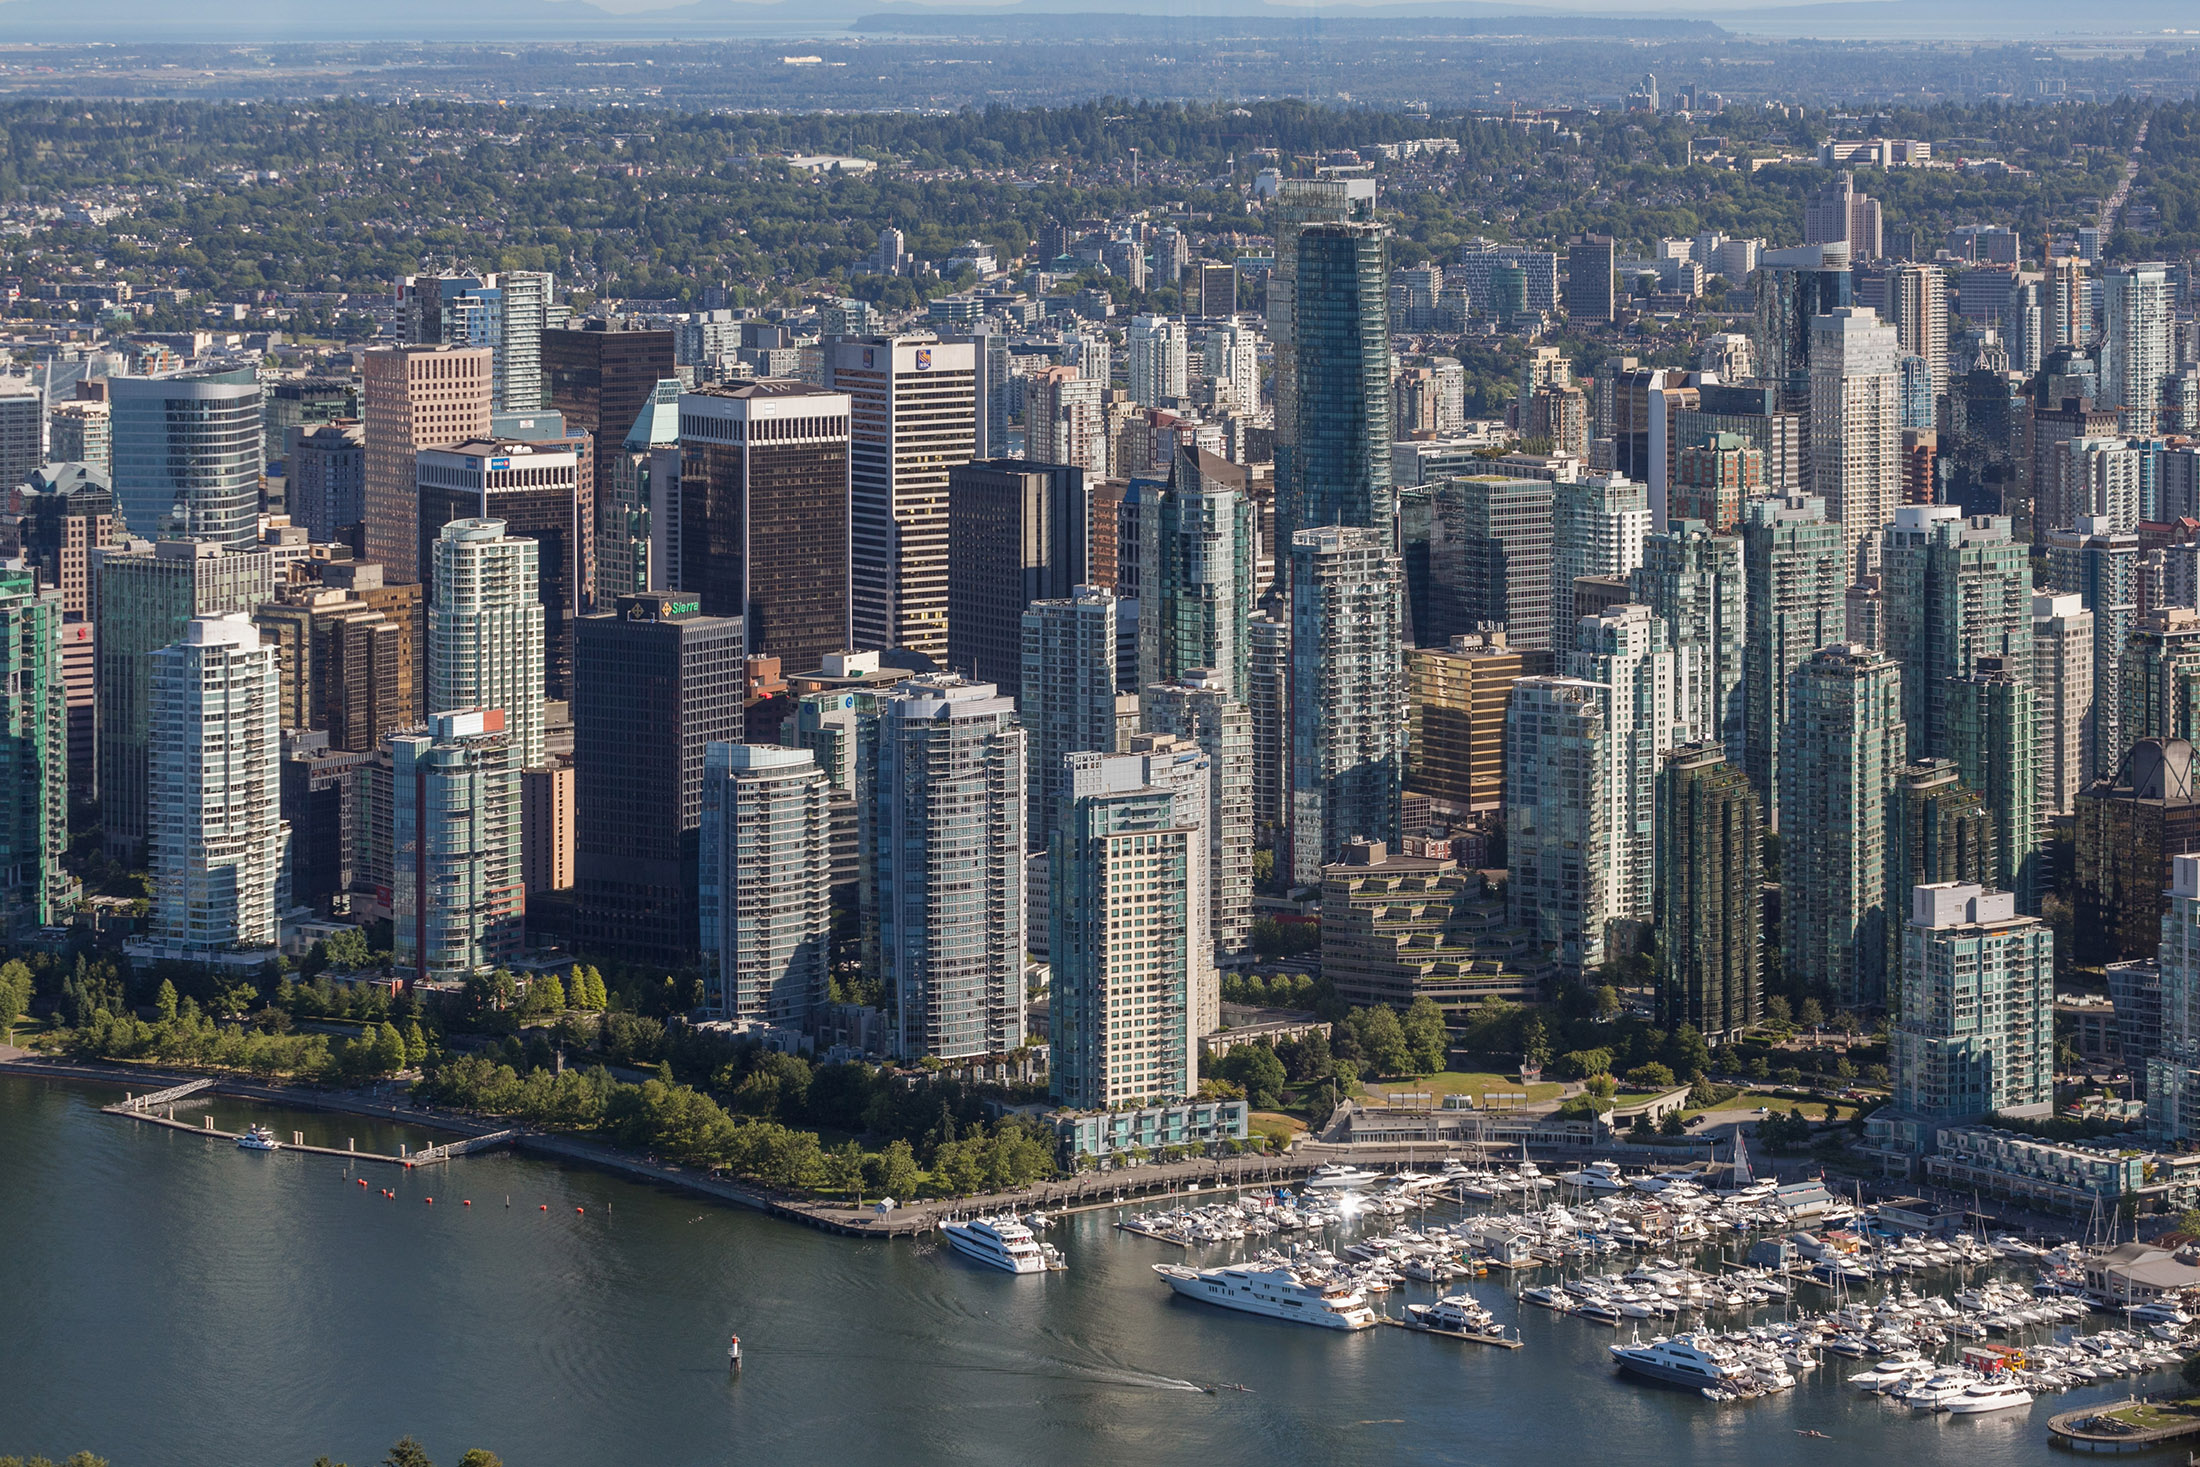 Aerial view of Vancouver Coal Harbour neighbourhood